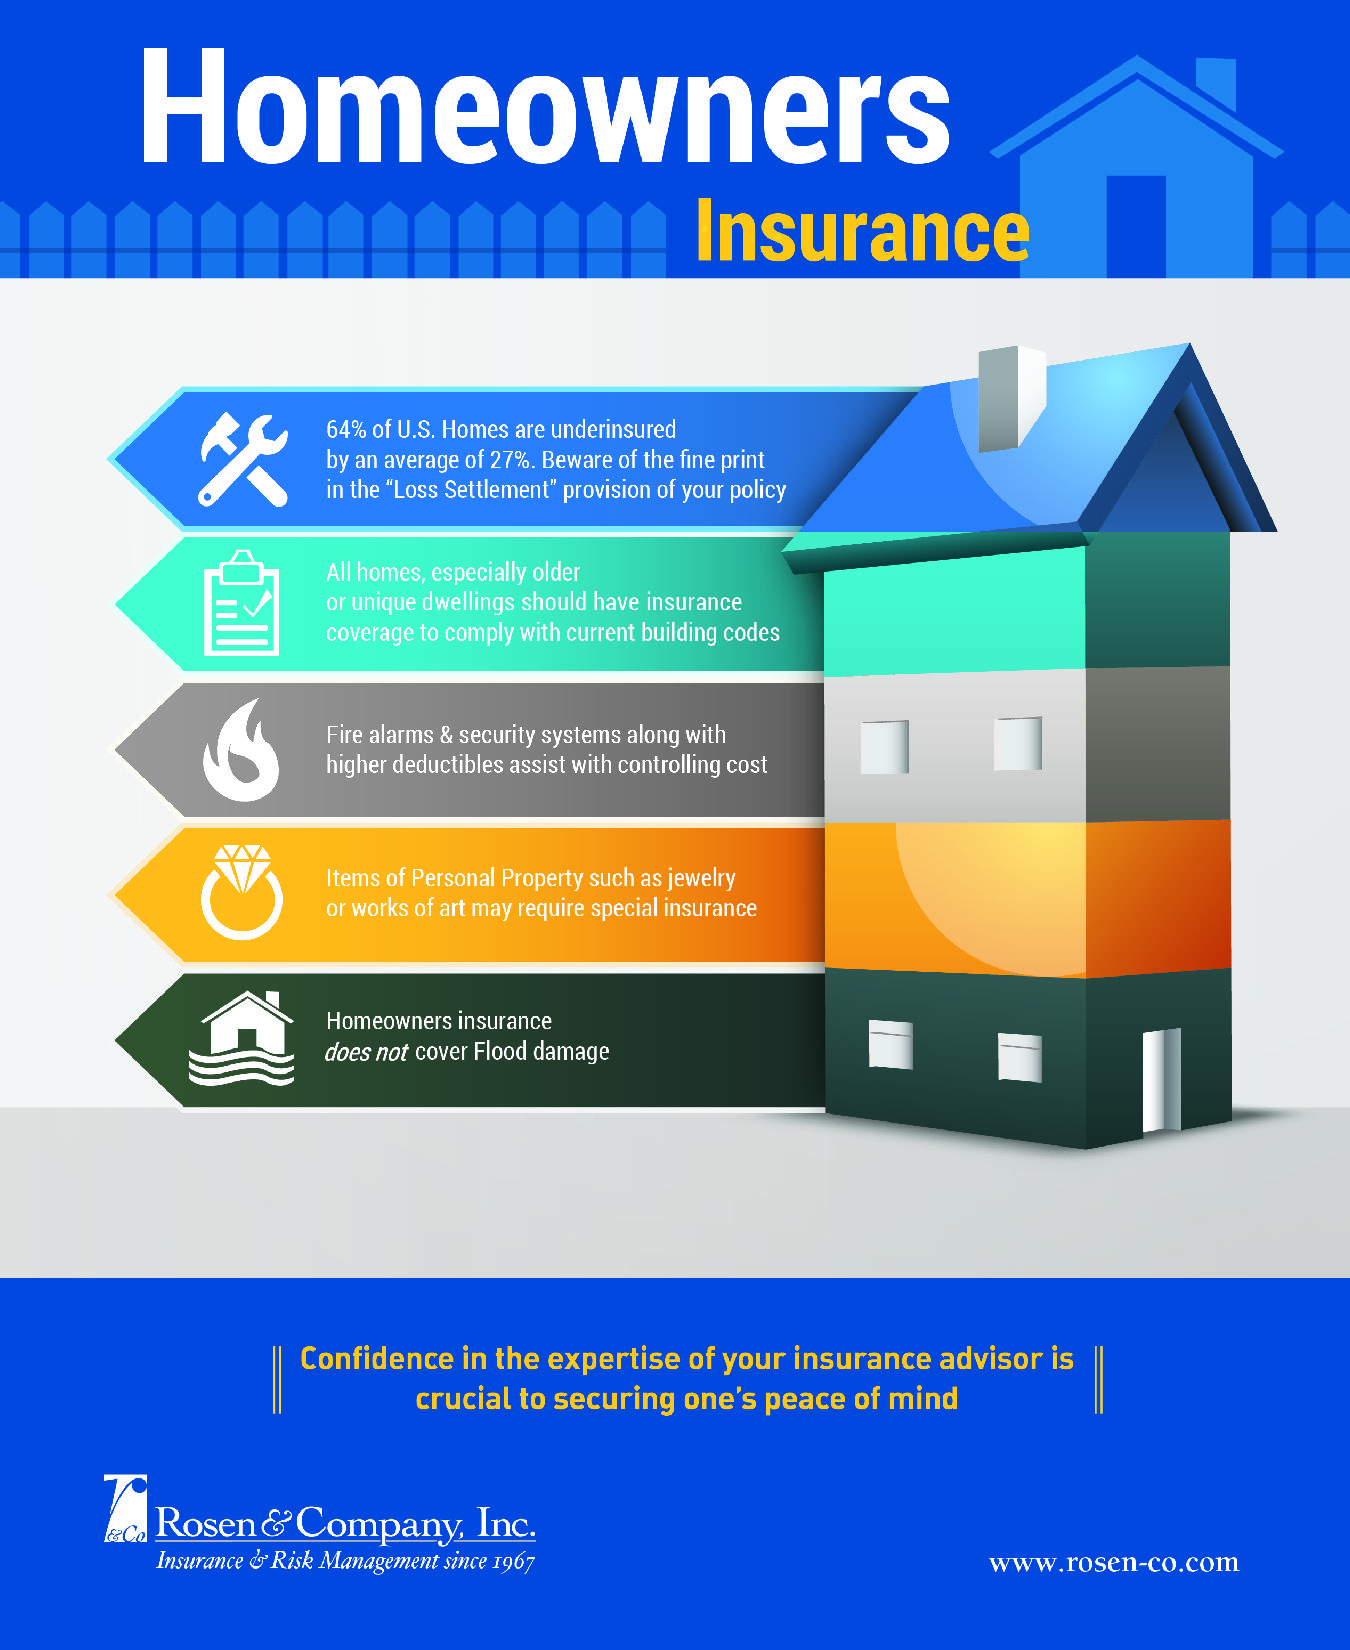 Pin By Rosen Company On Homeowners Insurance Homeowners